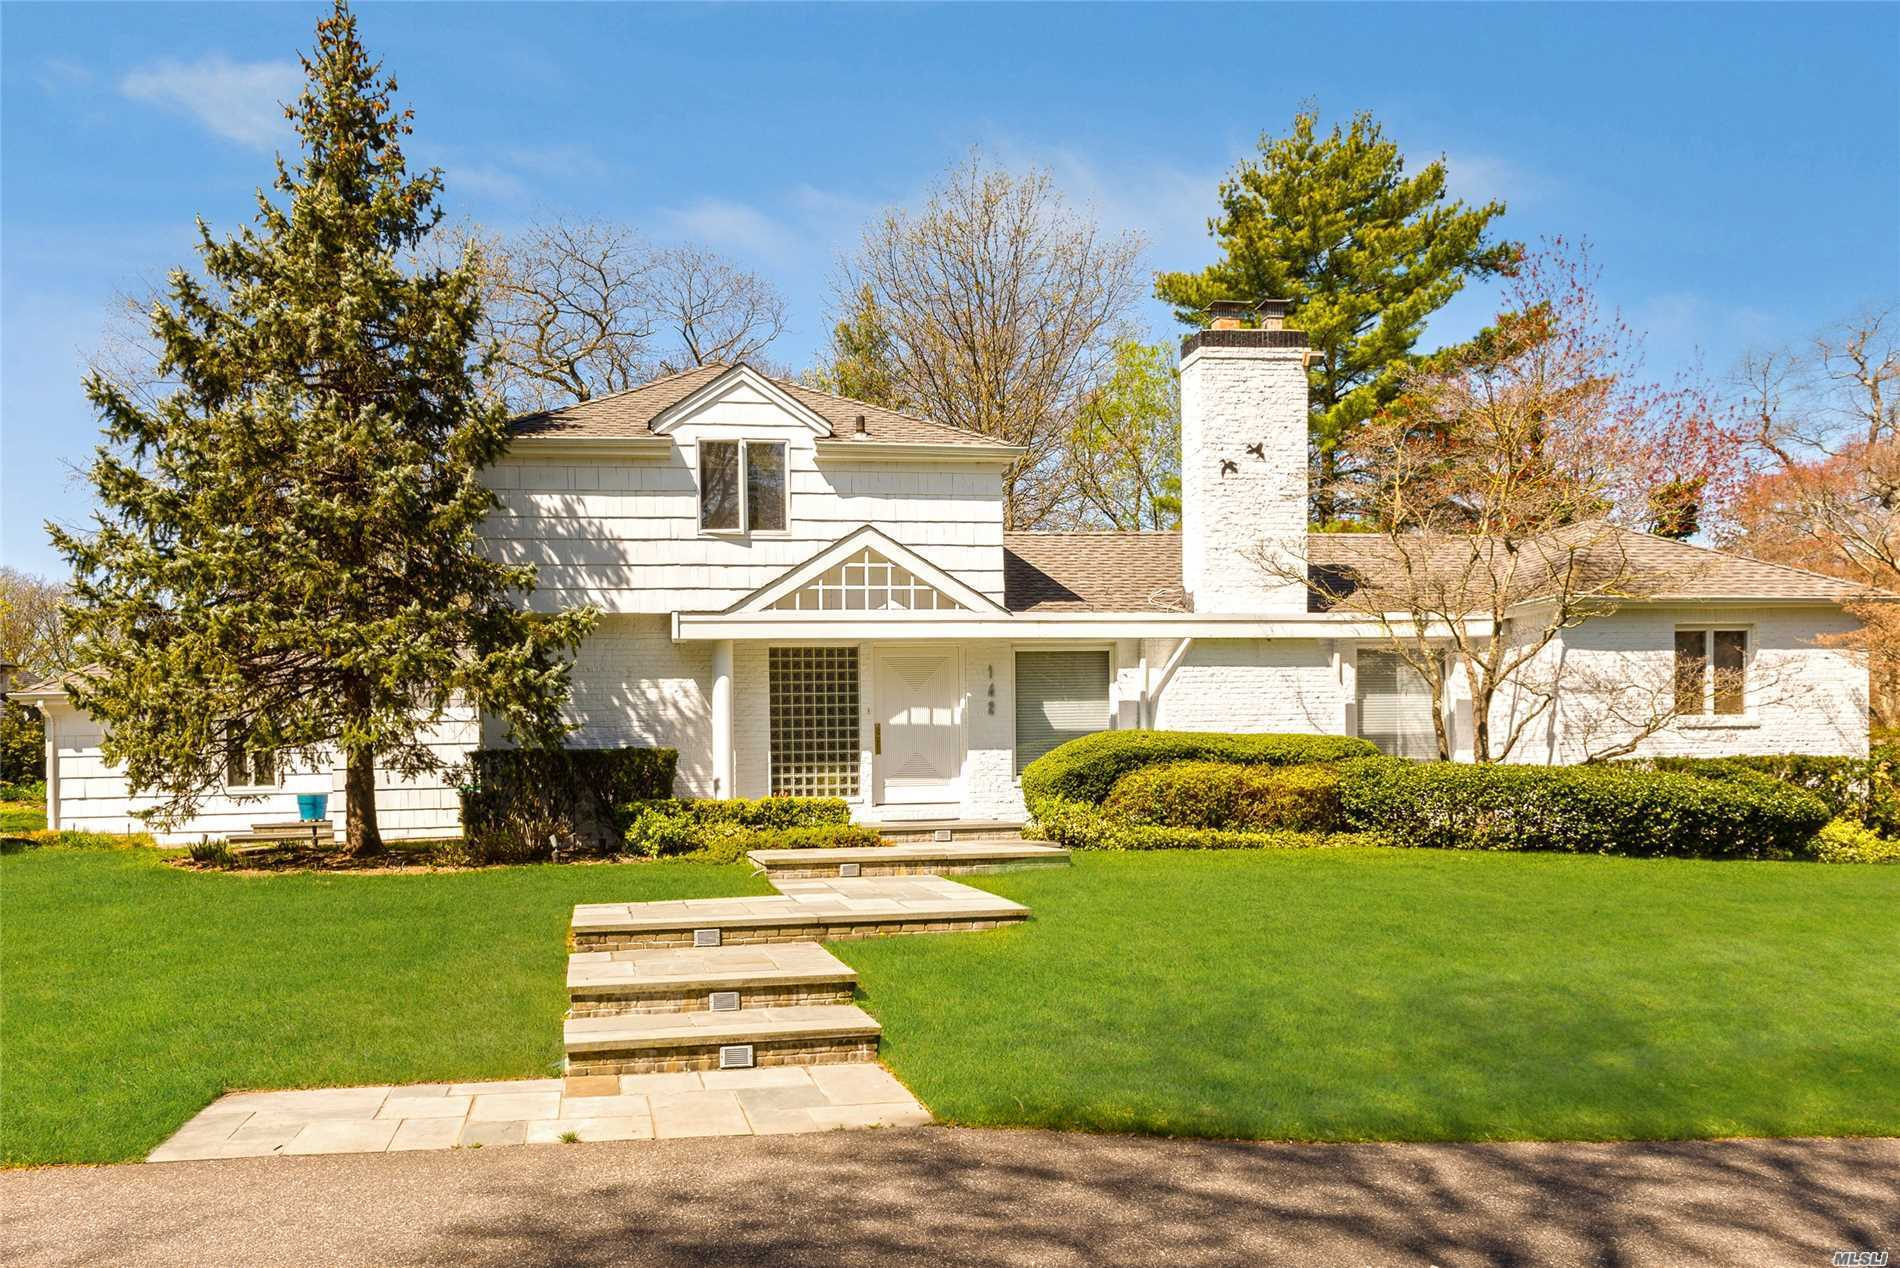 A Unique And Rare Opportunity To Own And Live On Willow Pond In Hewlett Harbor, N.Y. This House Boasts An Open Floor Plan With An Amazing Chef's Kitchen And Commercial Appliances. 4 Bedrooms, 3.5 Baths. Master Bedroom w Steam Shower.. Overlooks The Pond For Your Morning Coffee! Many Extra Features Must See, Will Not Last